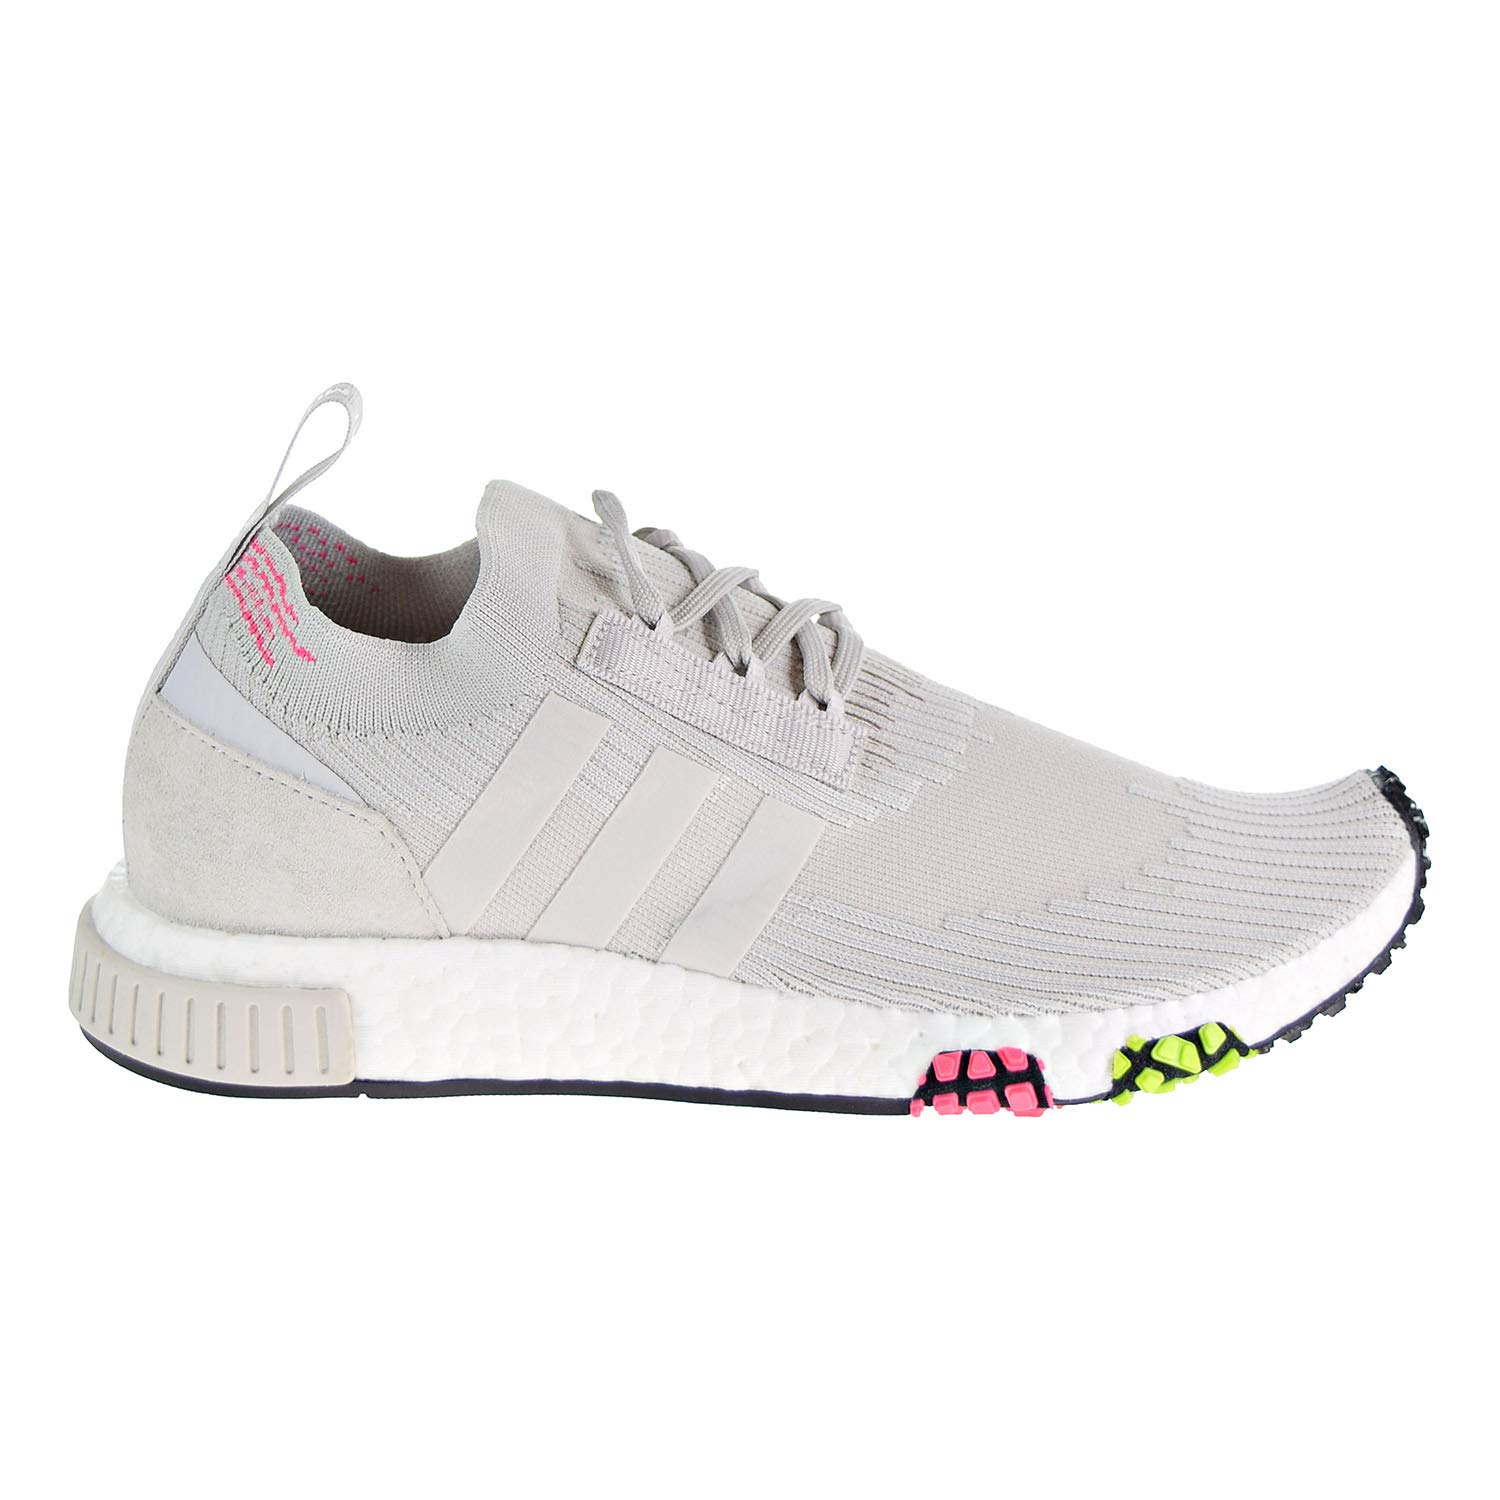 NMD Racer Pk Gray Grey One Solar Pink